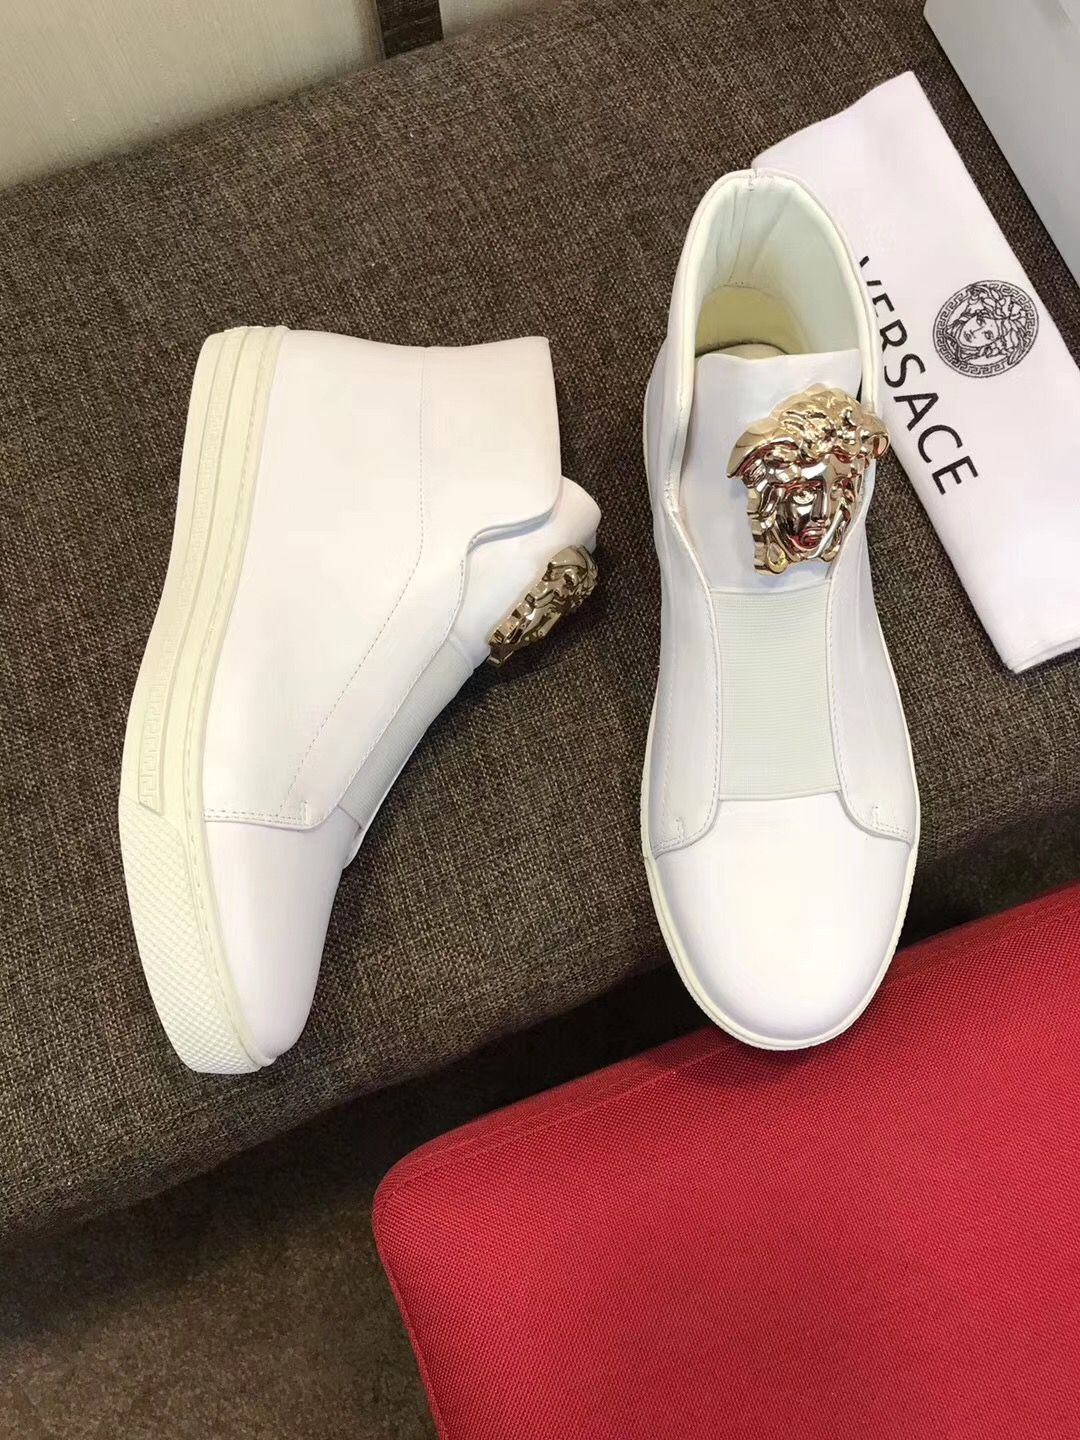 Pin on Versace men's shoes